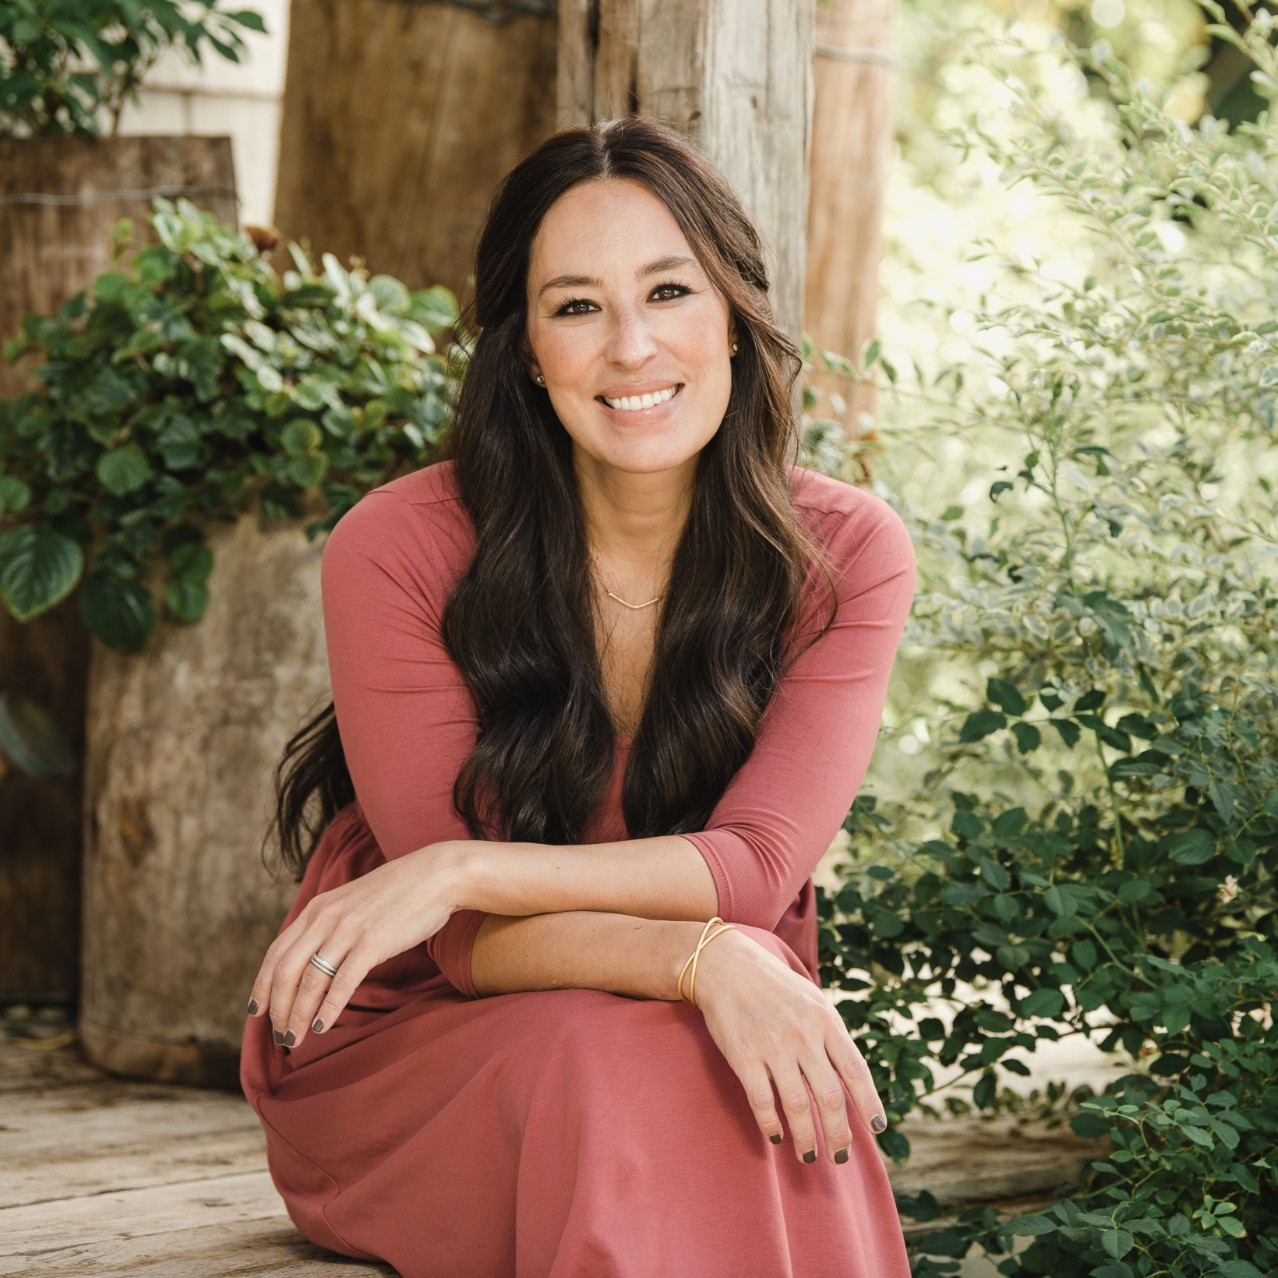 Joanna Gaines Floret A Year In Flowers praise